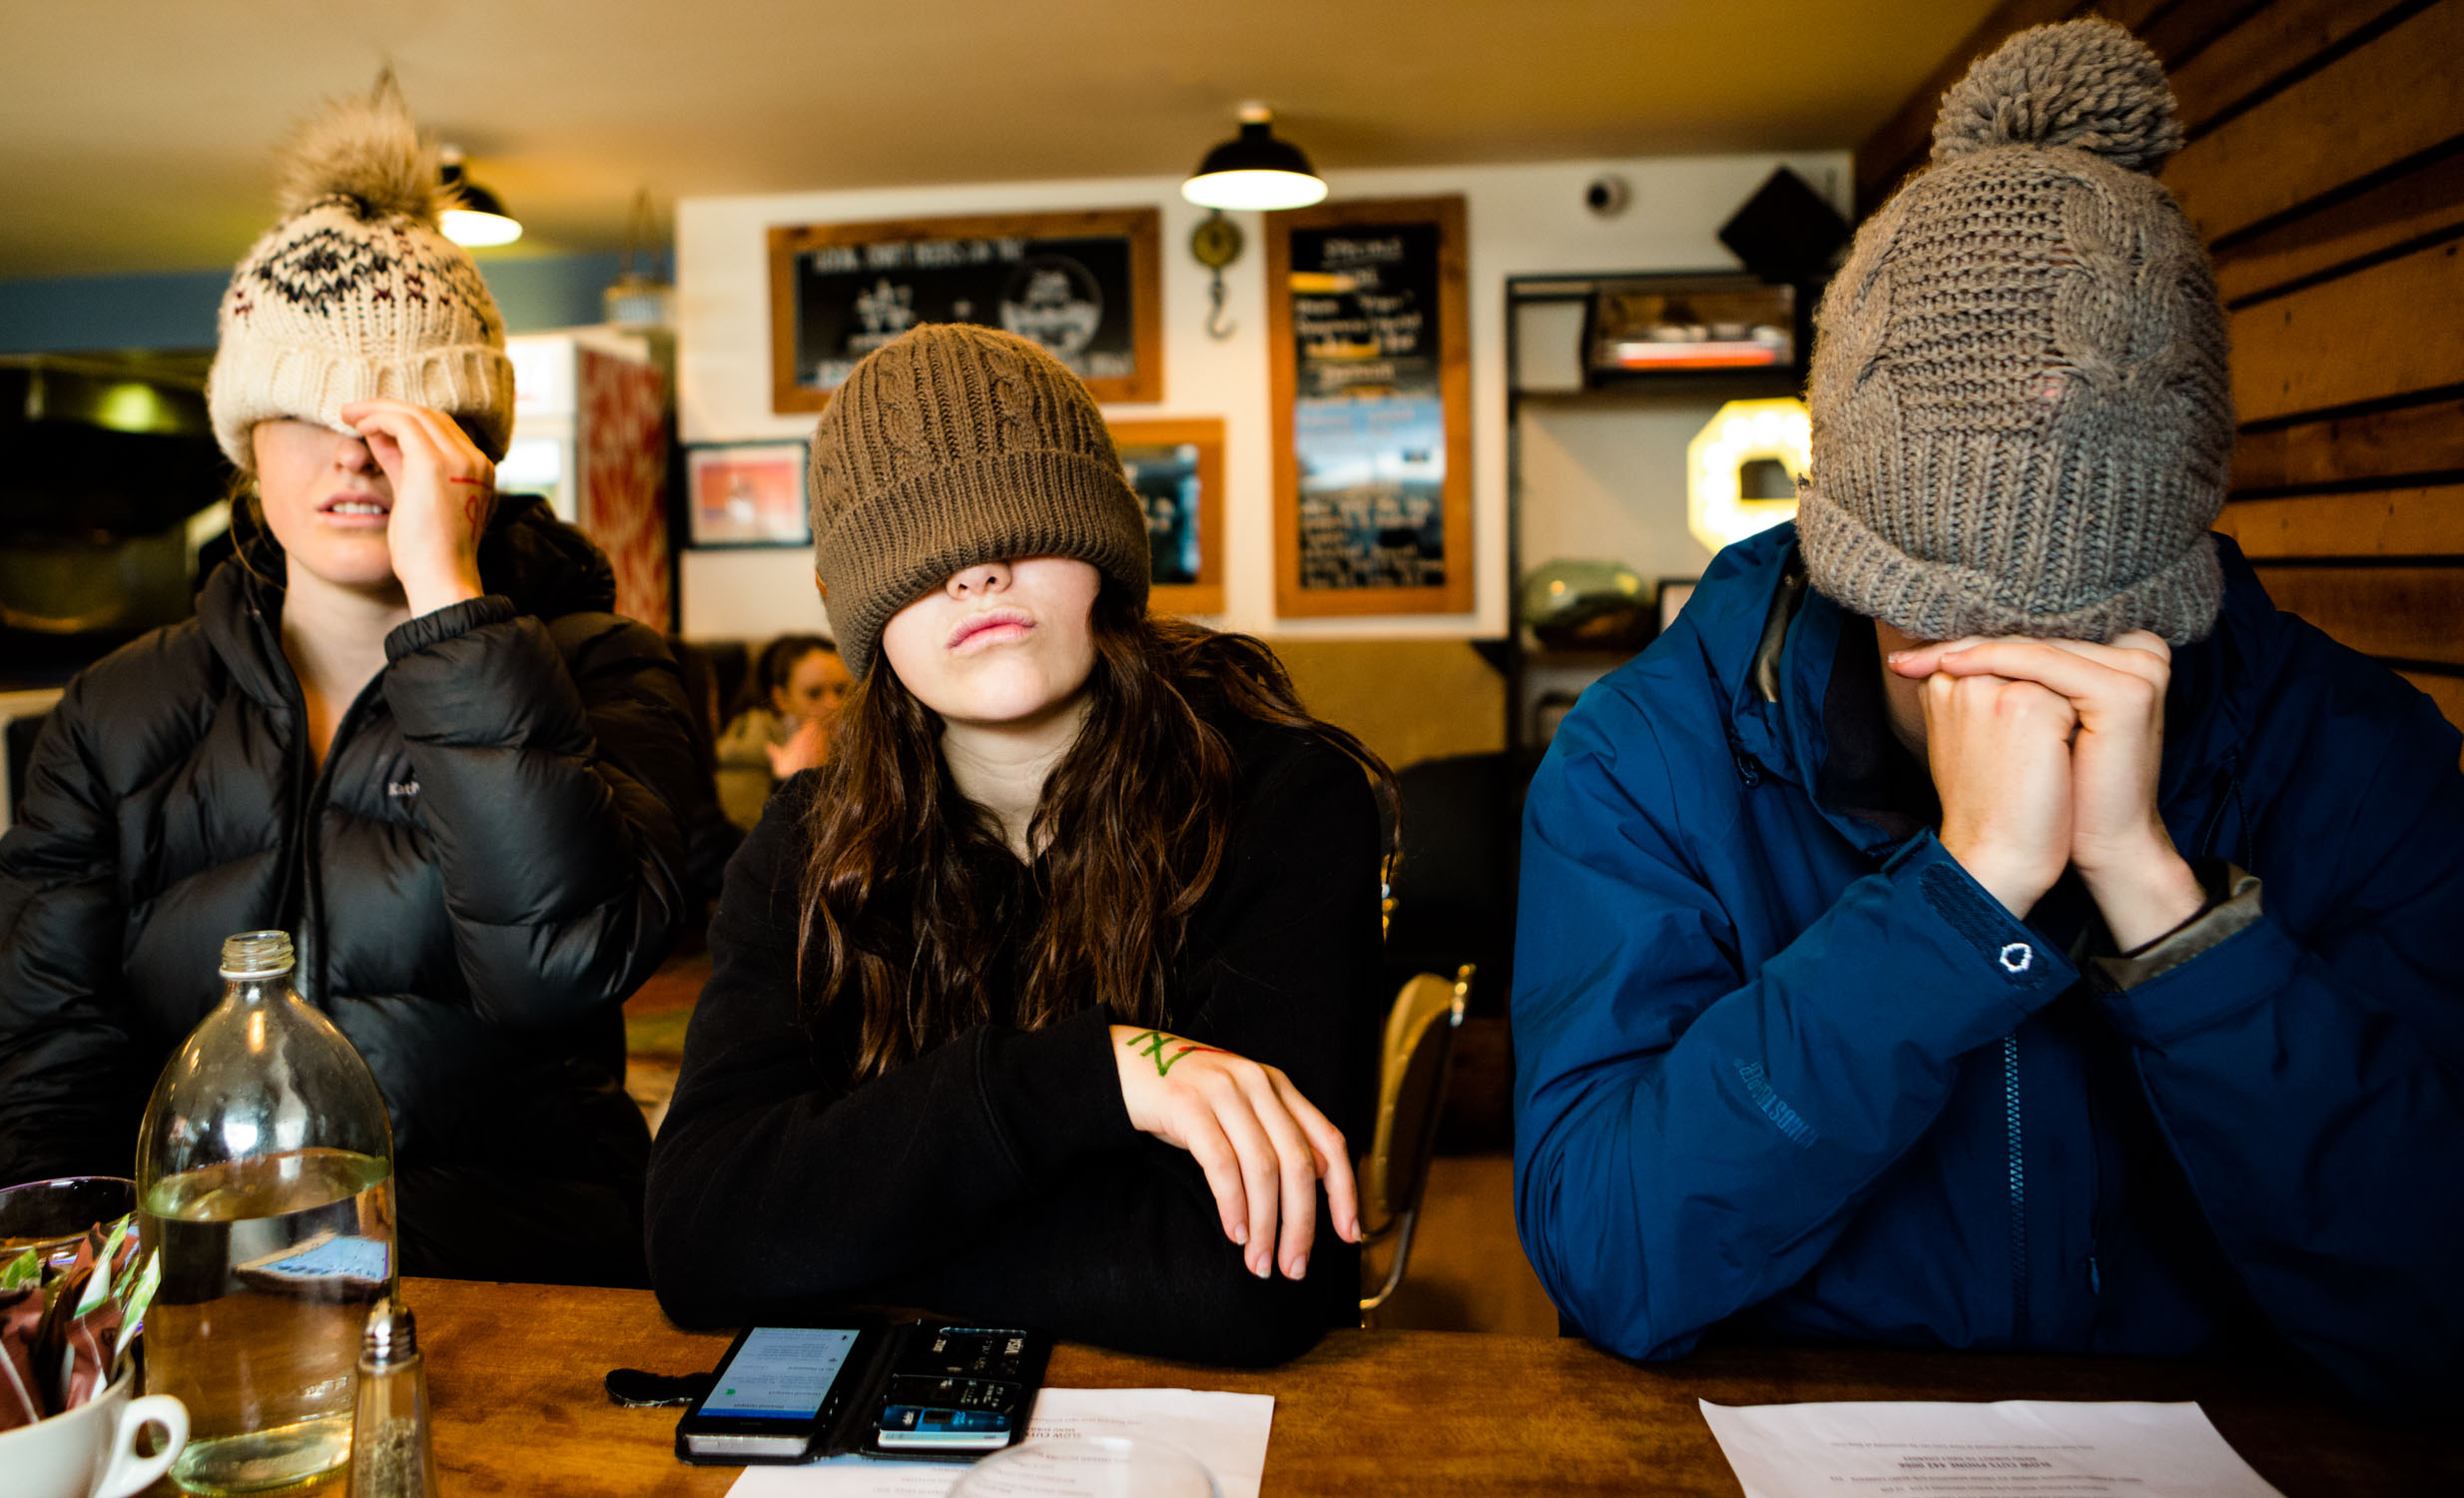 3 teenagers with attitude in cafe_Arrowtown_New Zealand_spid pye_958__B6C1226-Edit-Edit.jpg